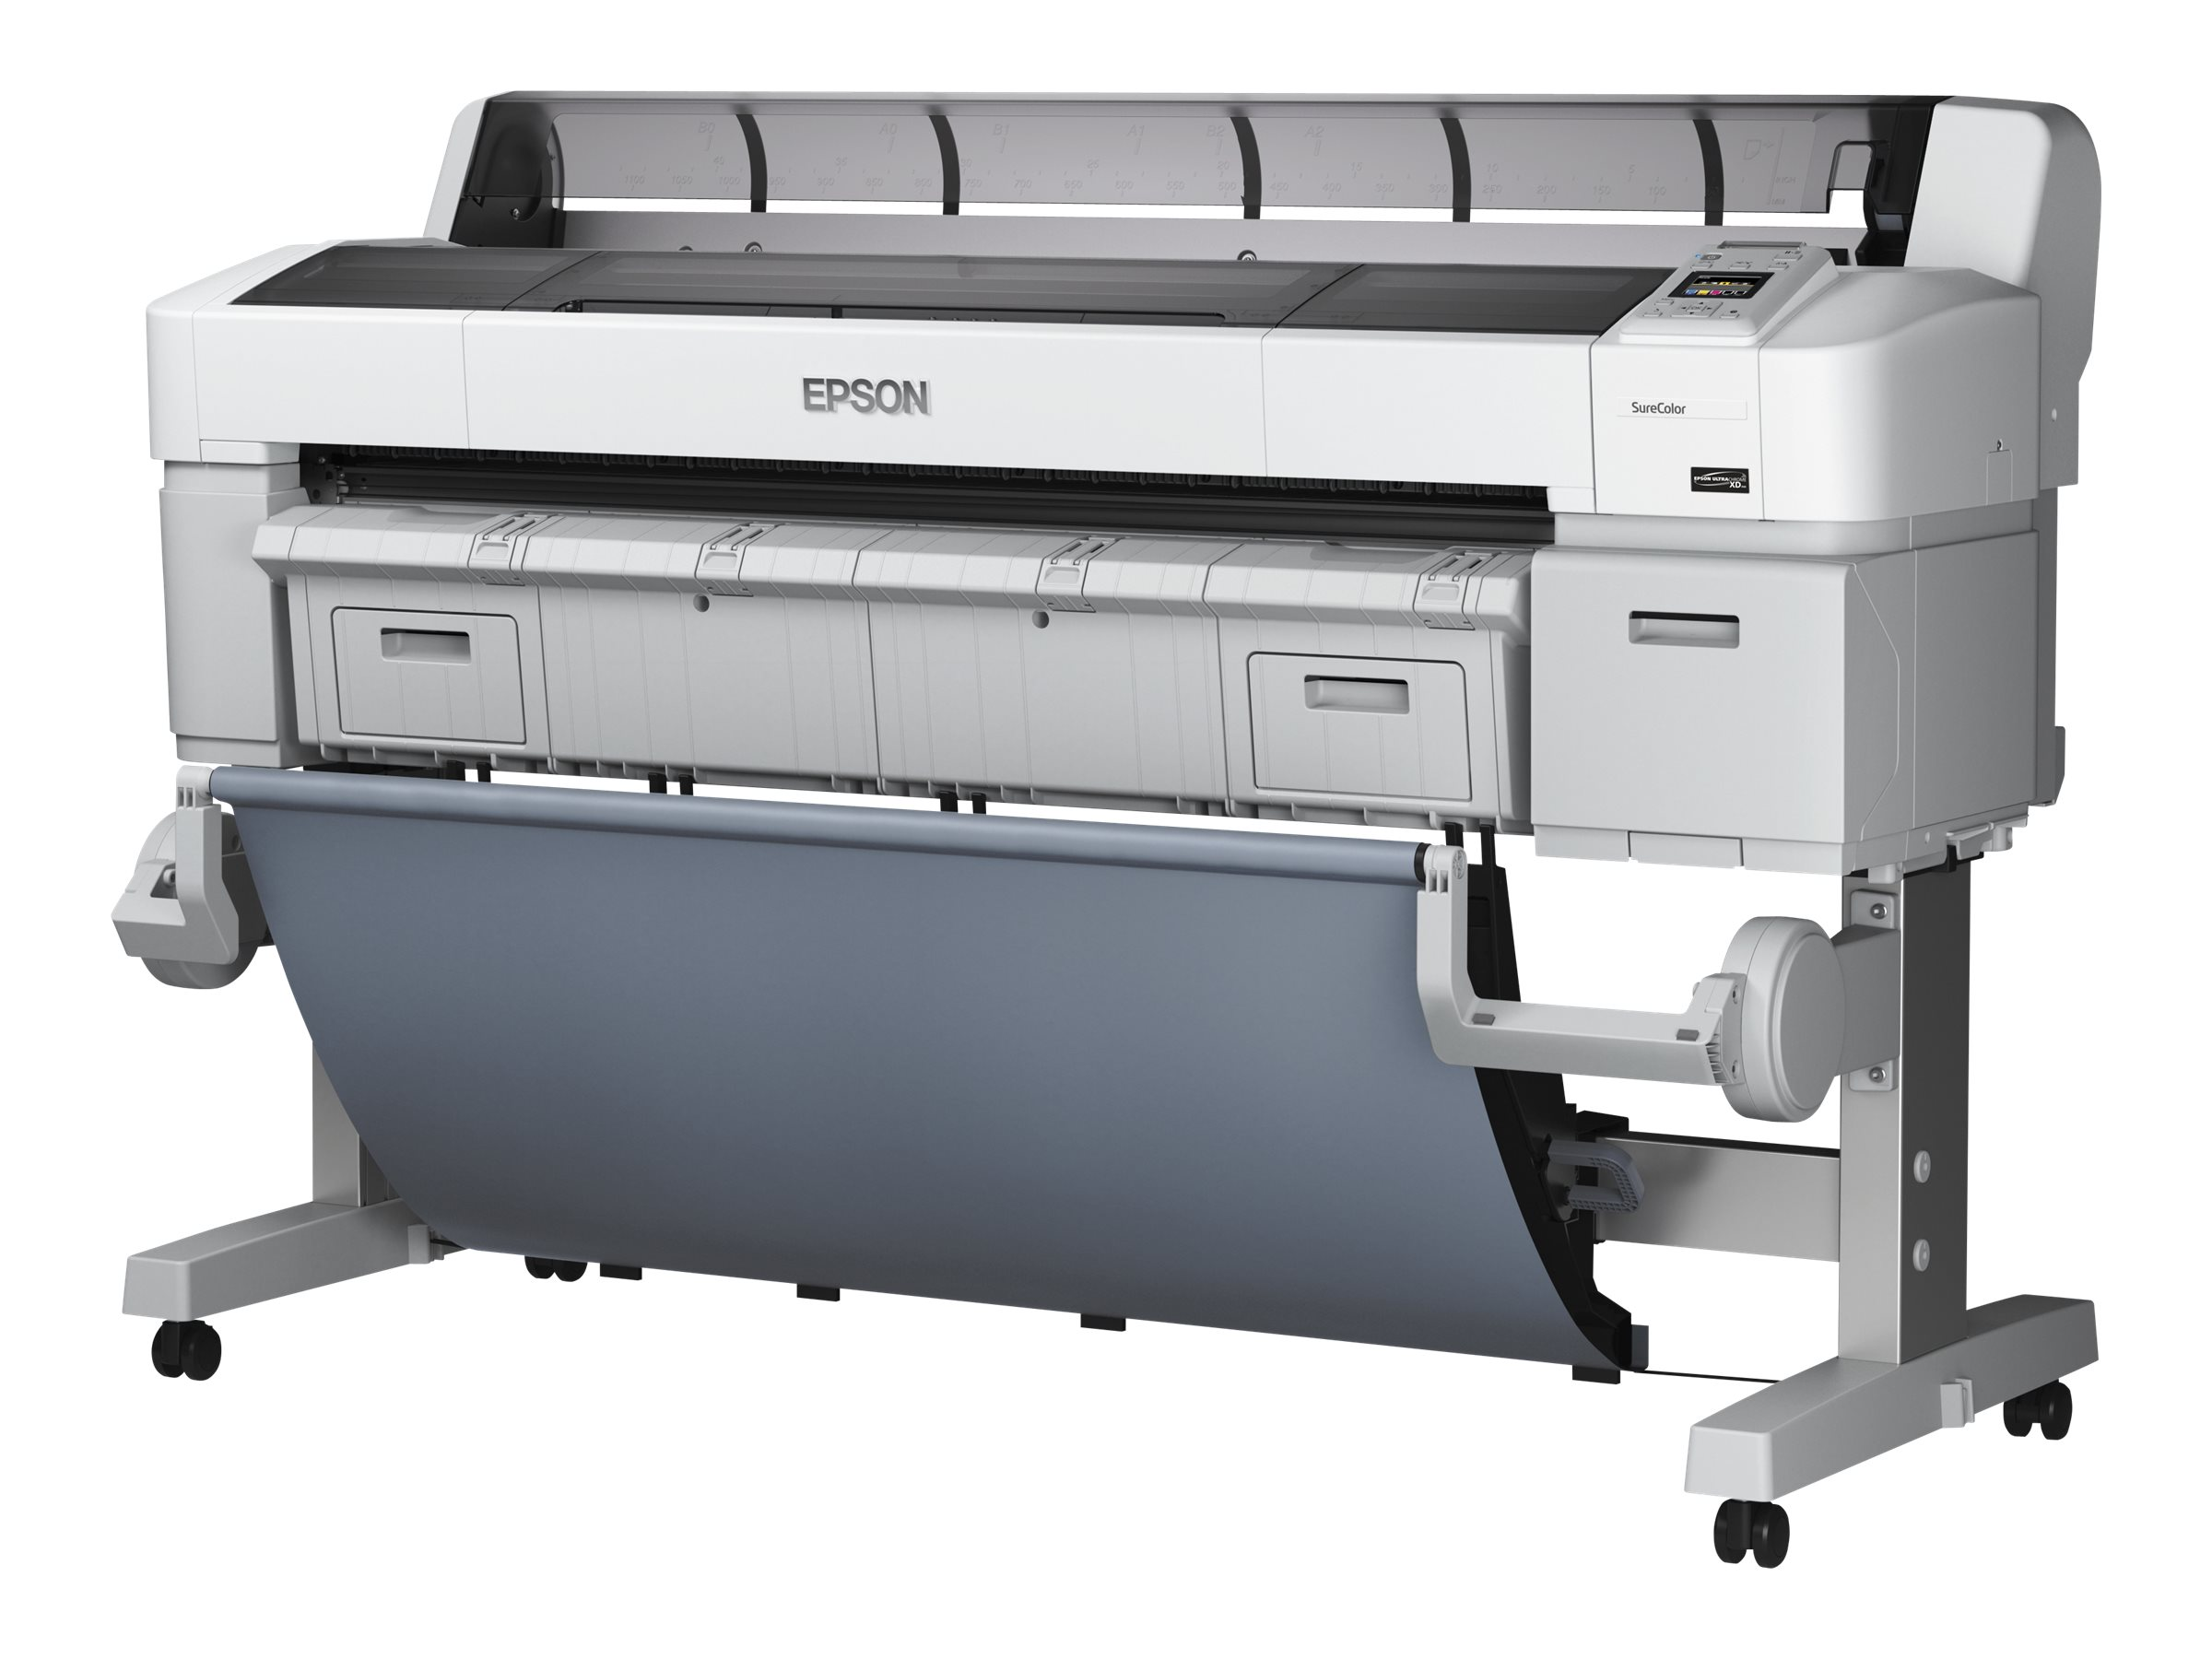 Epson SureColor SC-T7200-PS - 1118 mm (44